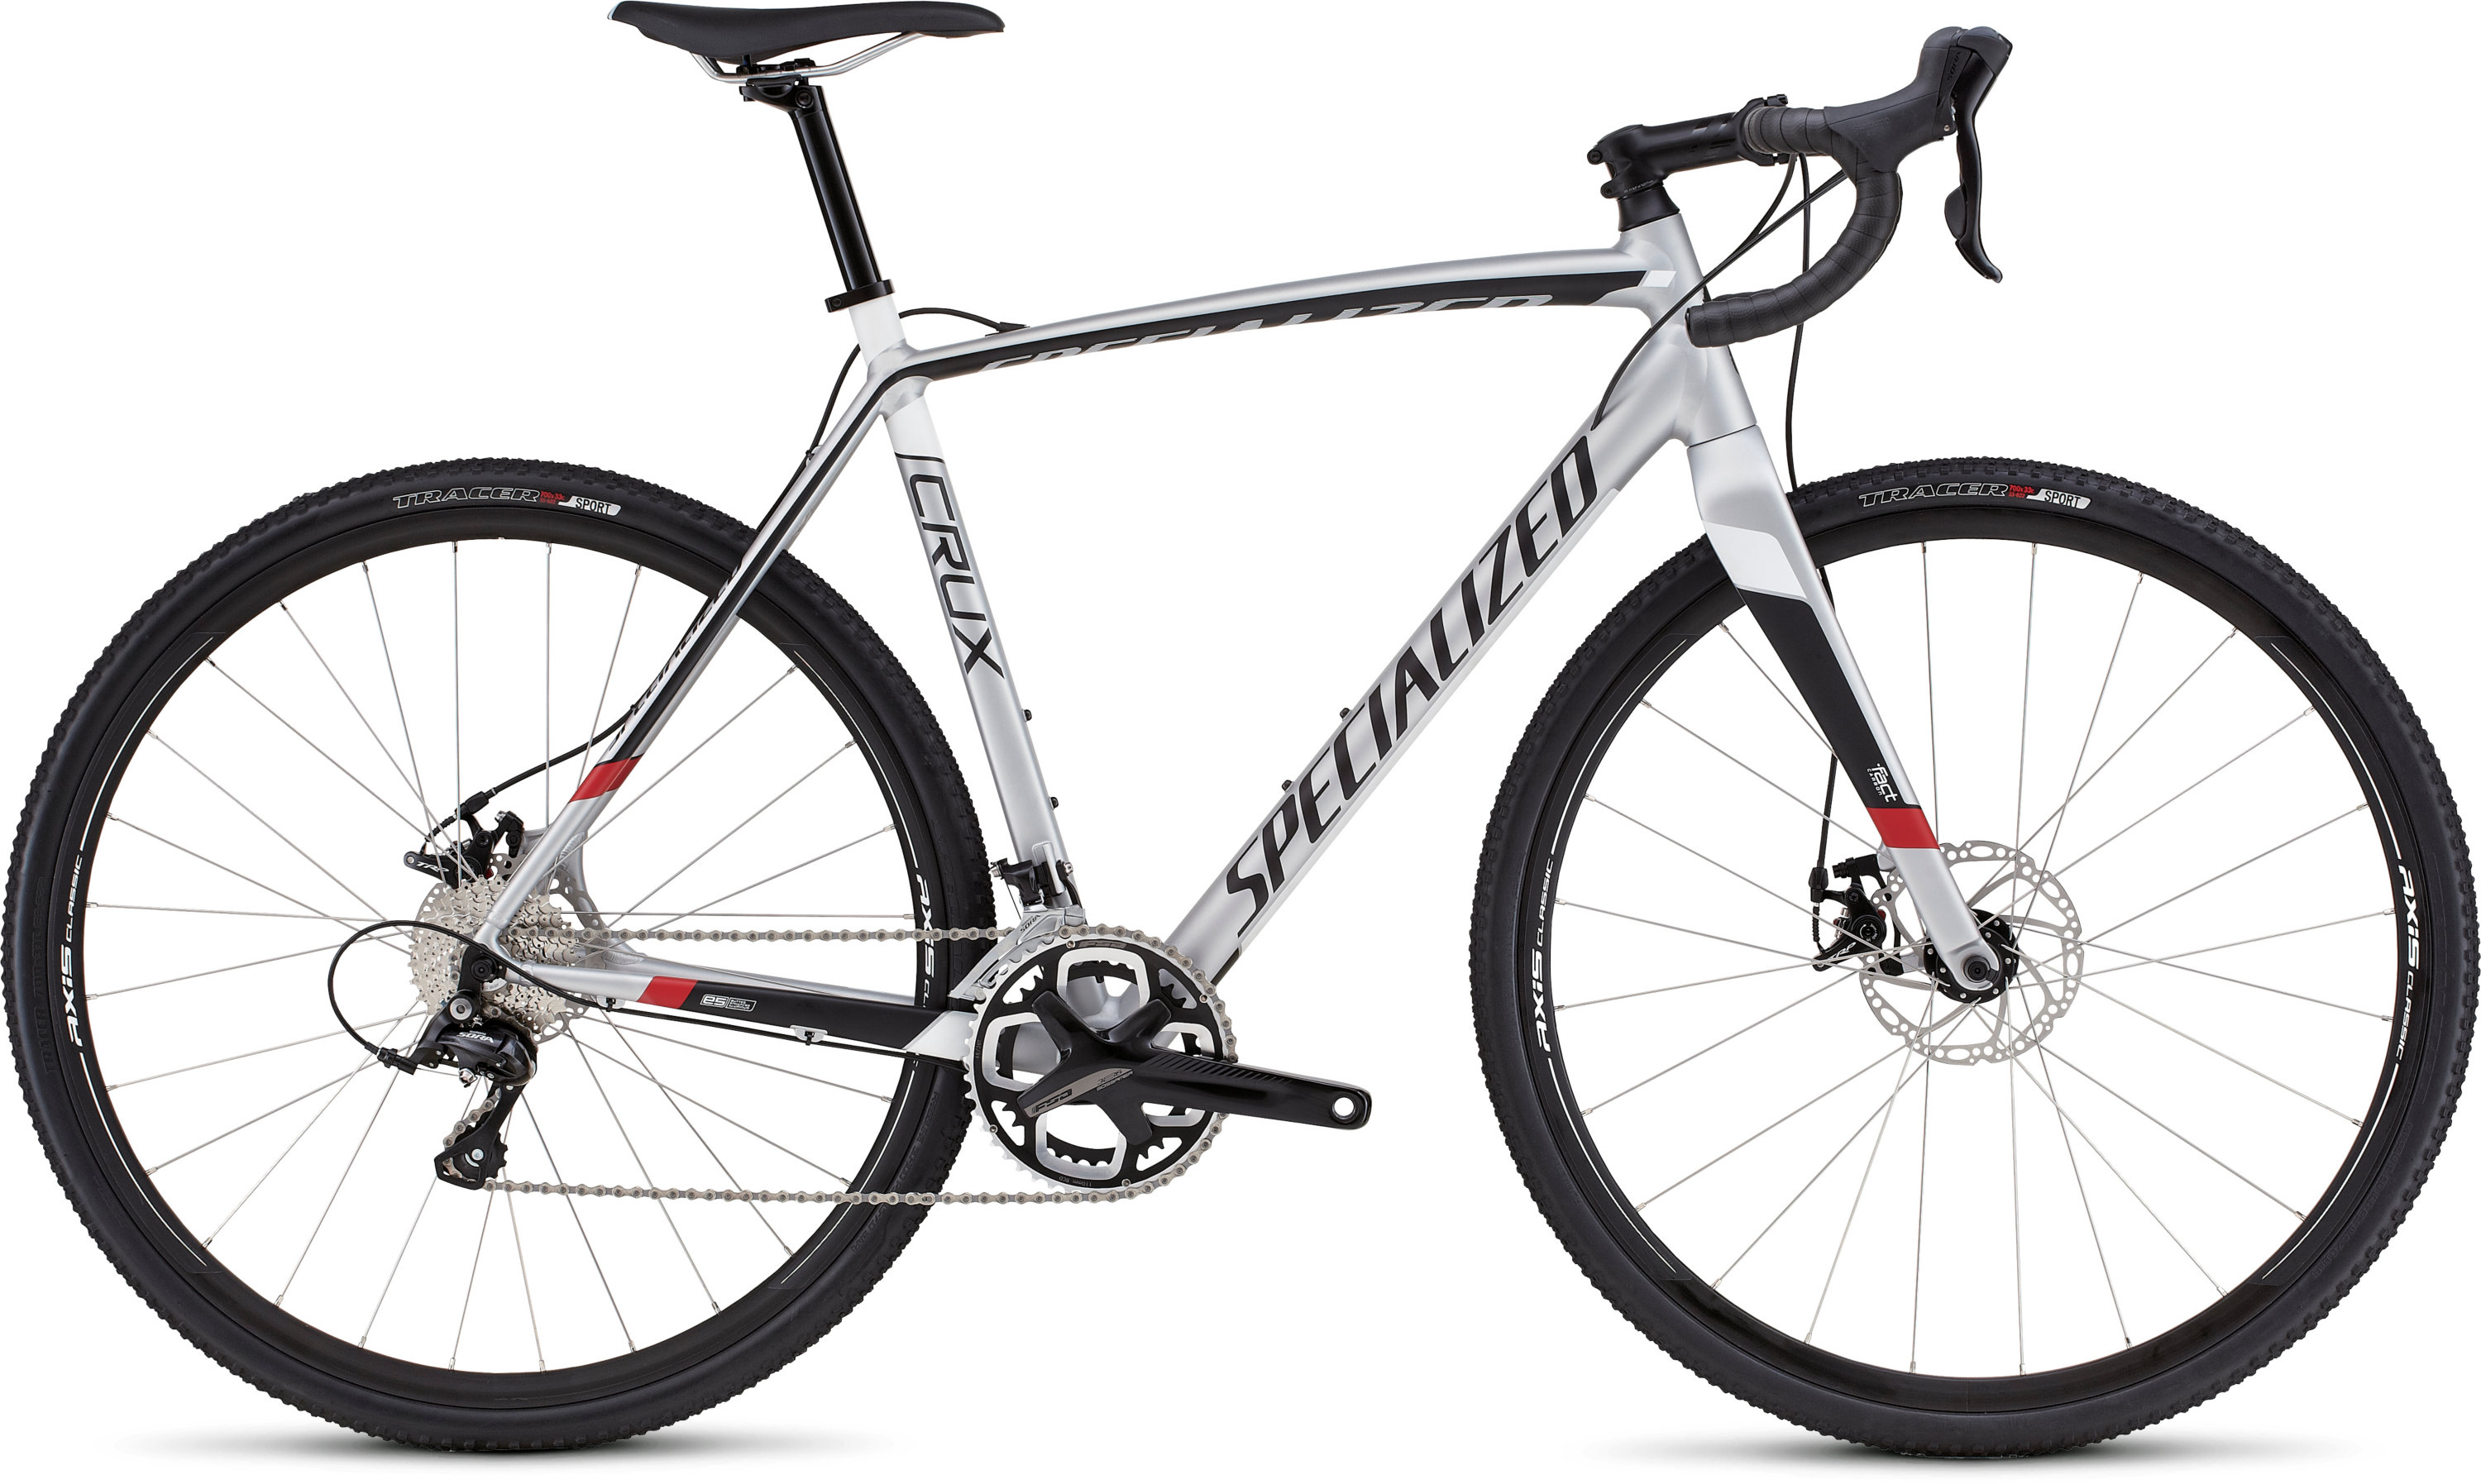 SPECIALIZED CRUX E5 FLKSIL/BLK/WHT/RED 46 - Bikedreams & Dustbikes